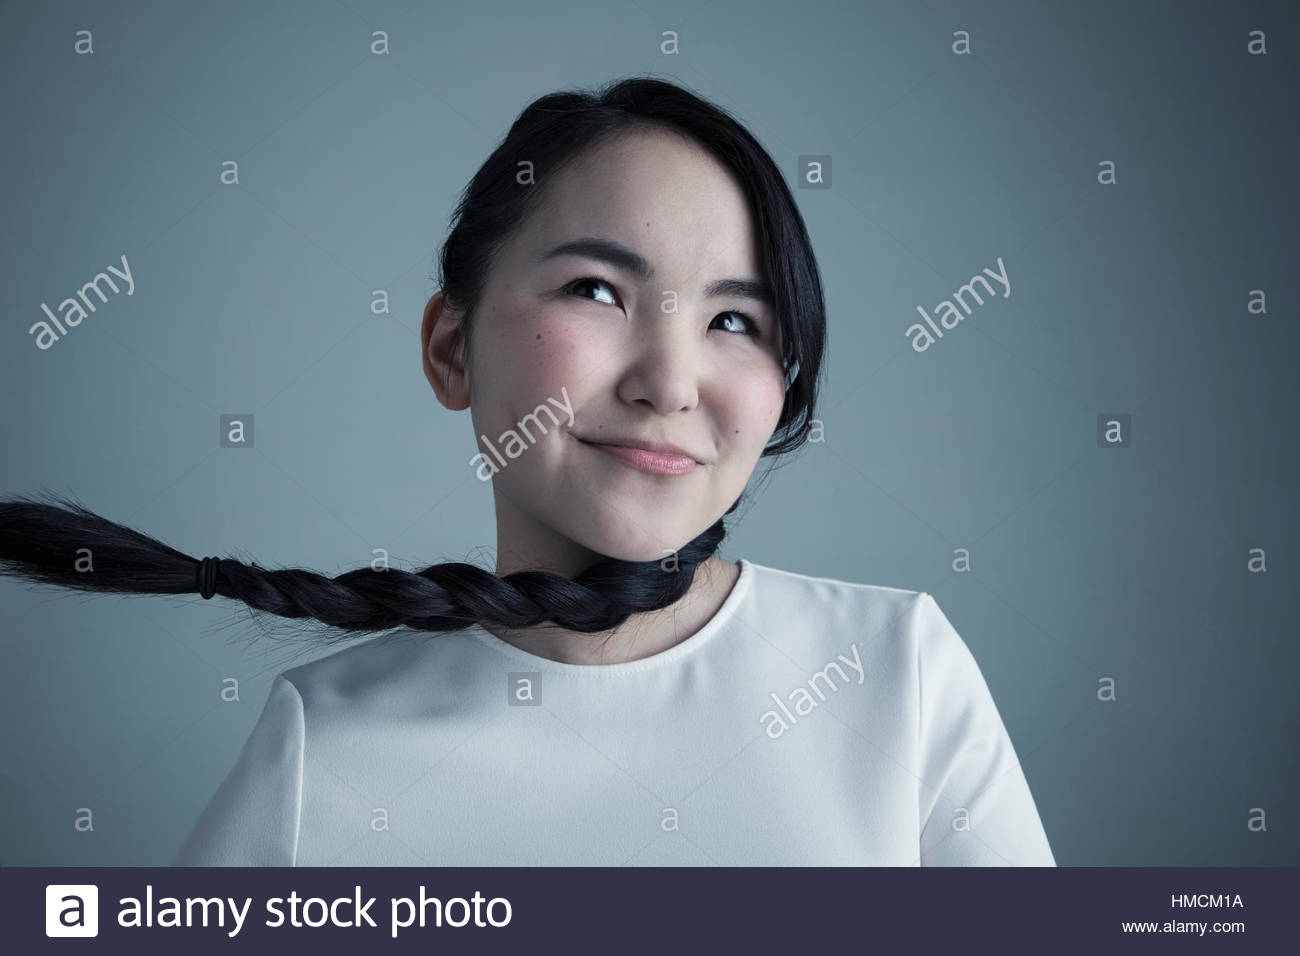 Portrait mischievous Asian young woman with long black braided hair - Stock Image